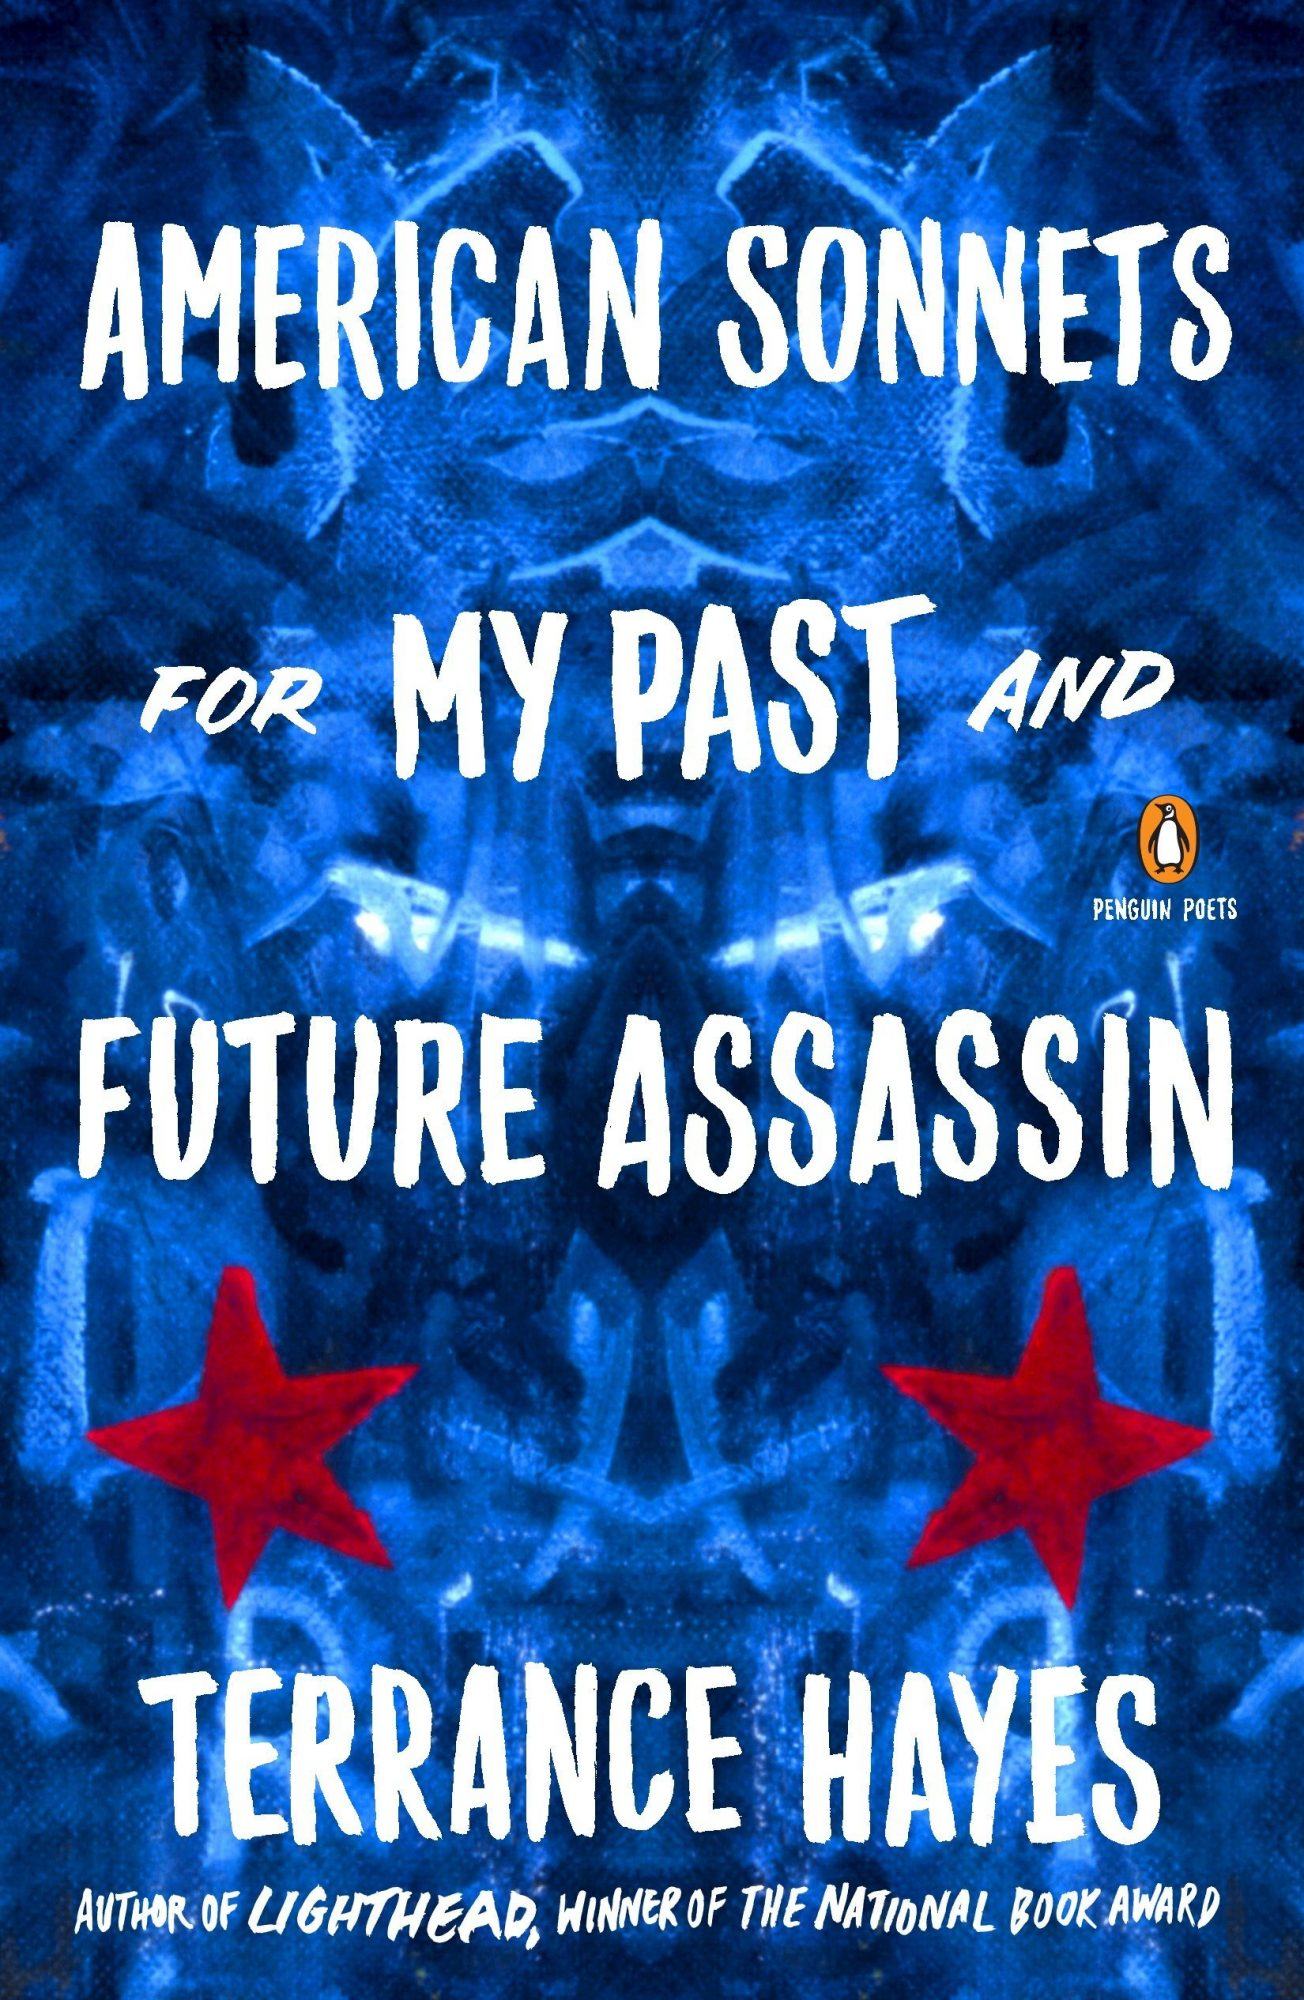 American Sonnets for My Past and Future Assassin by Terrance Hayes